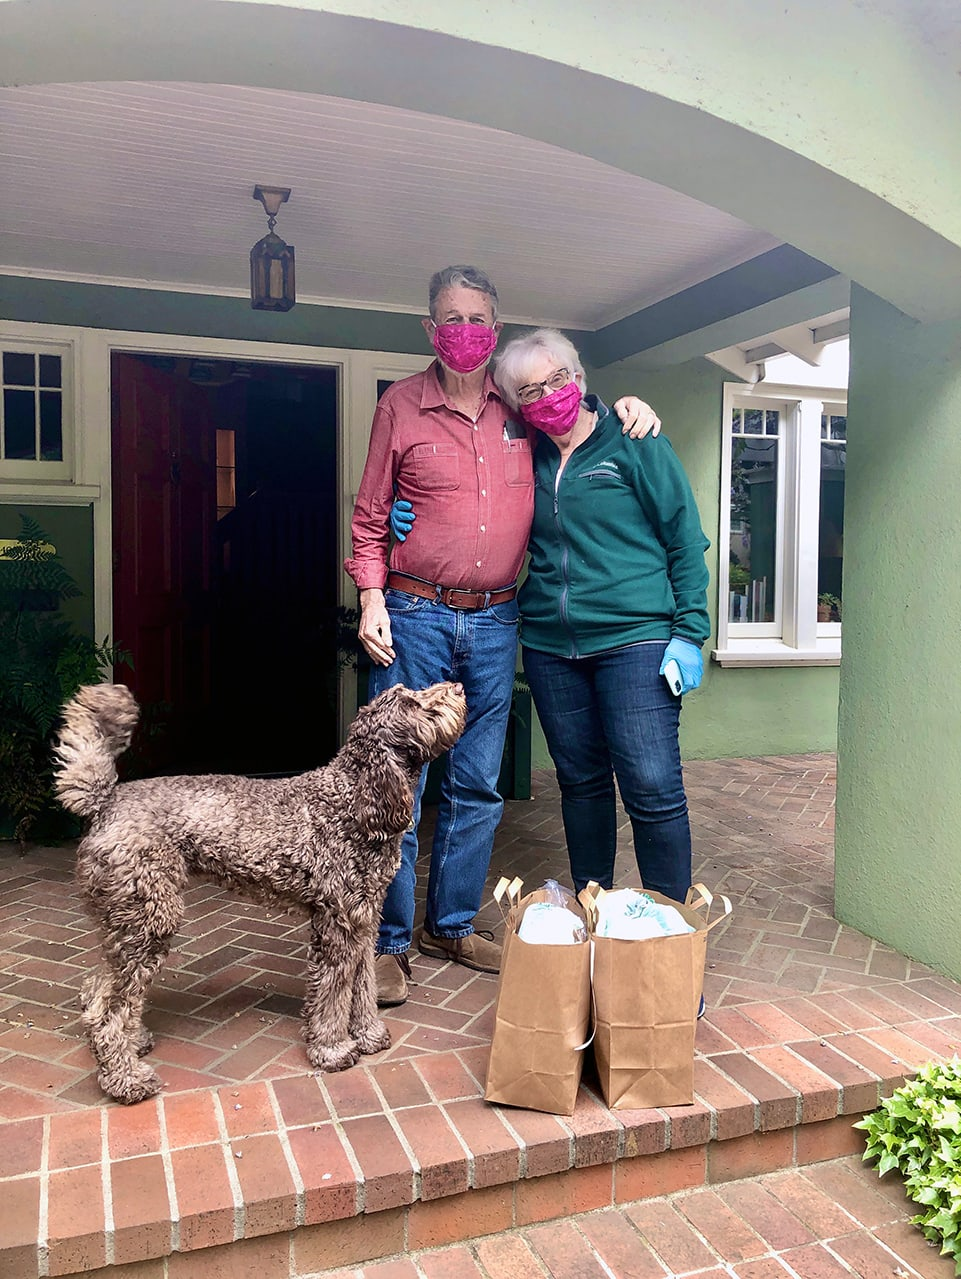 Avenidas Village members (and their dog) receive a no-contact grocery delivery